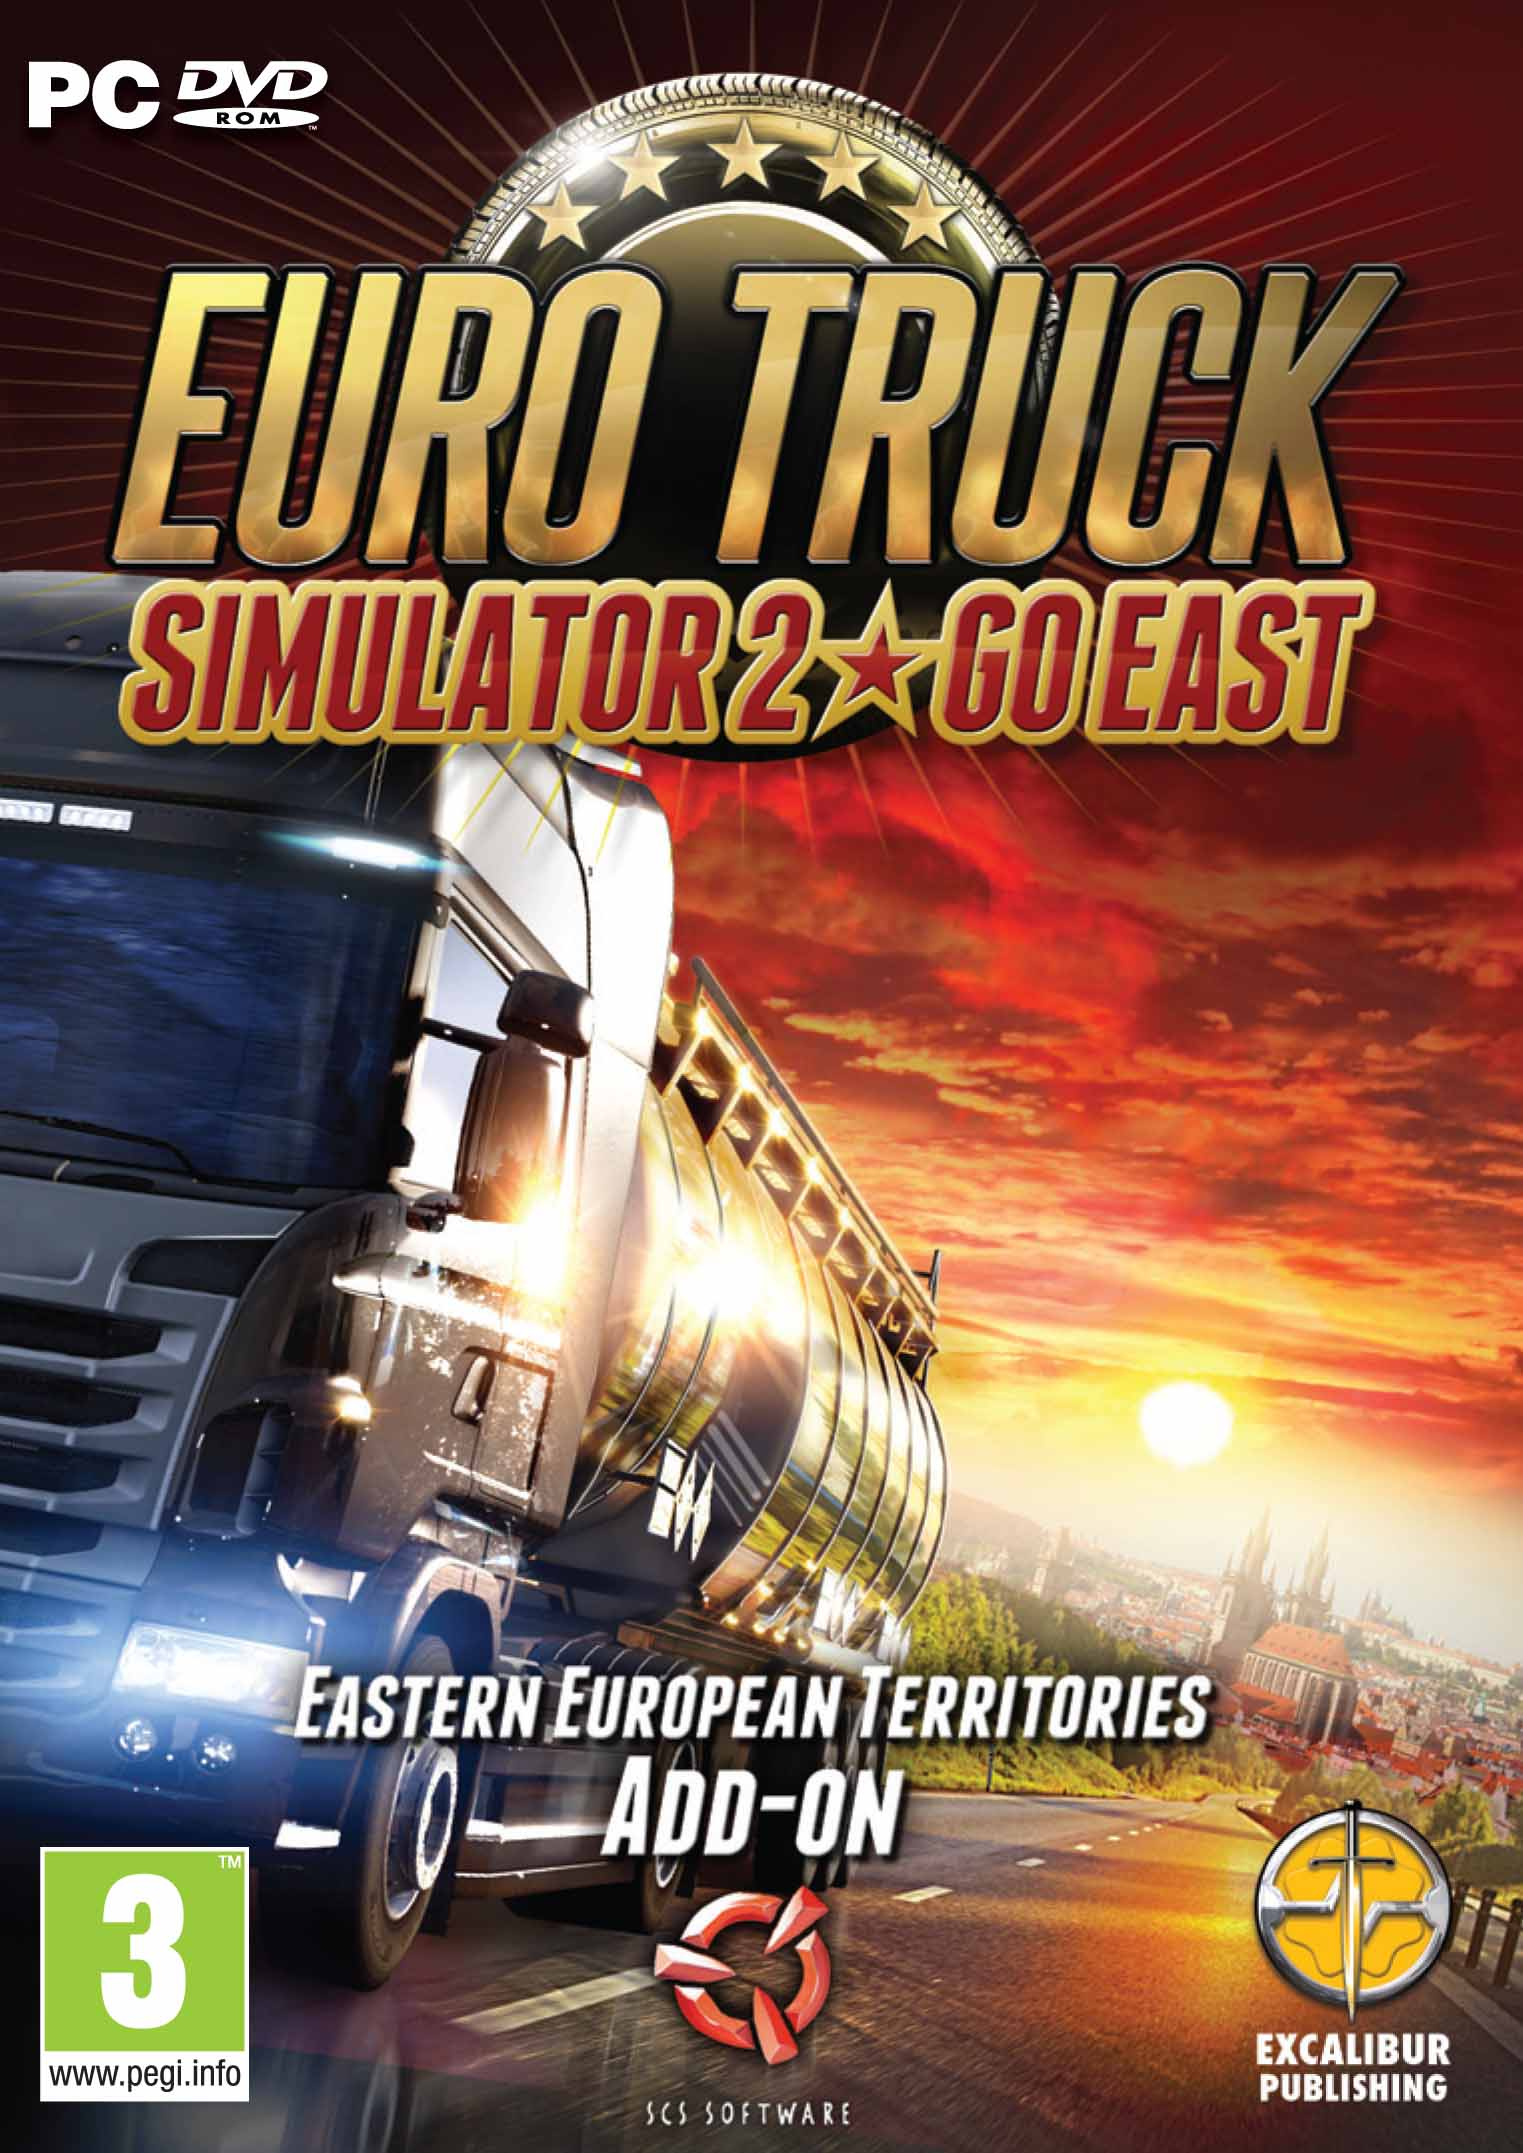 Euro Truck Simulator 2 - Go East add-on - PC / Mac